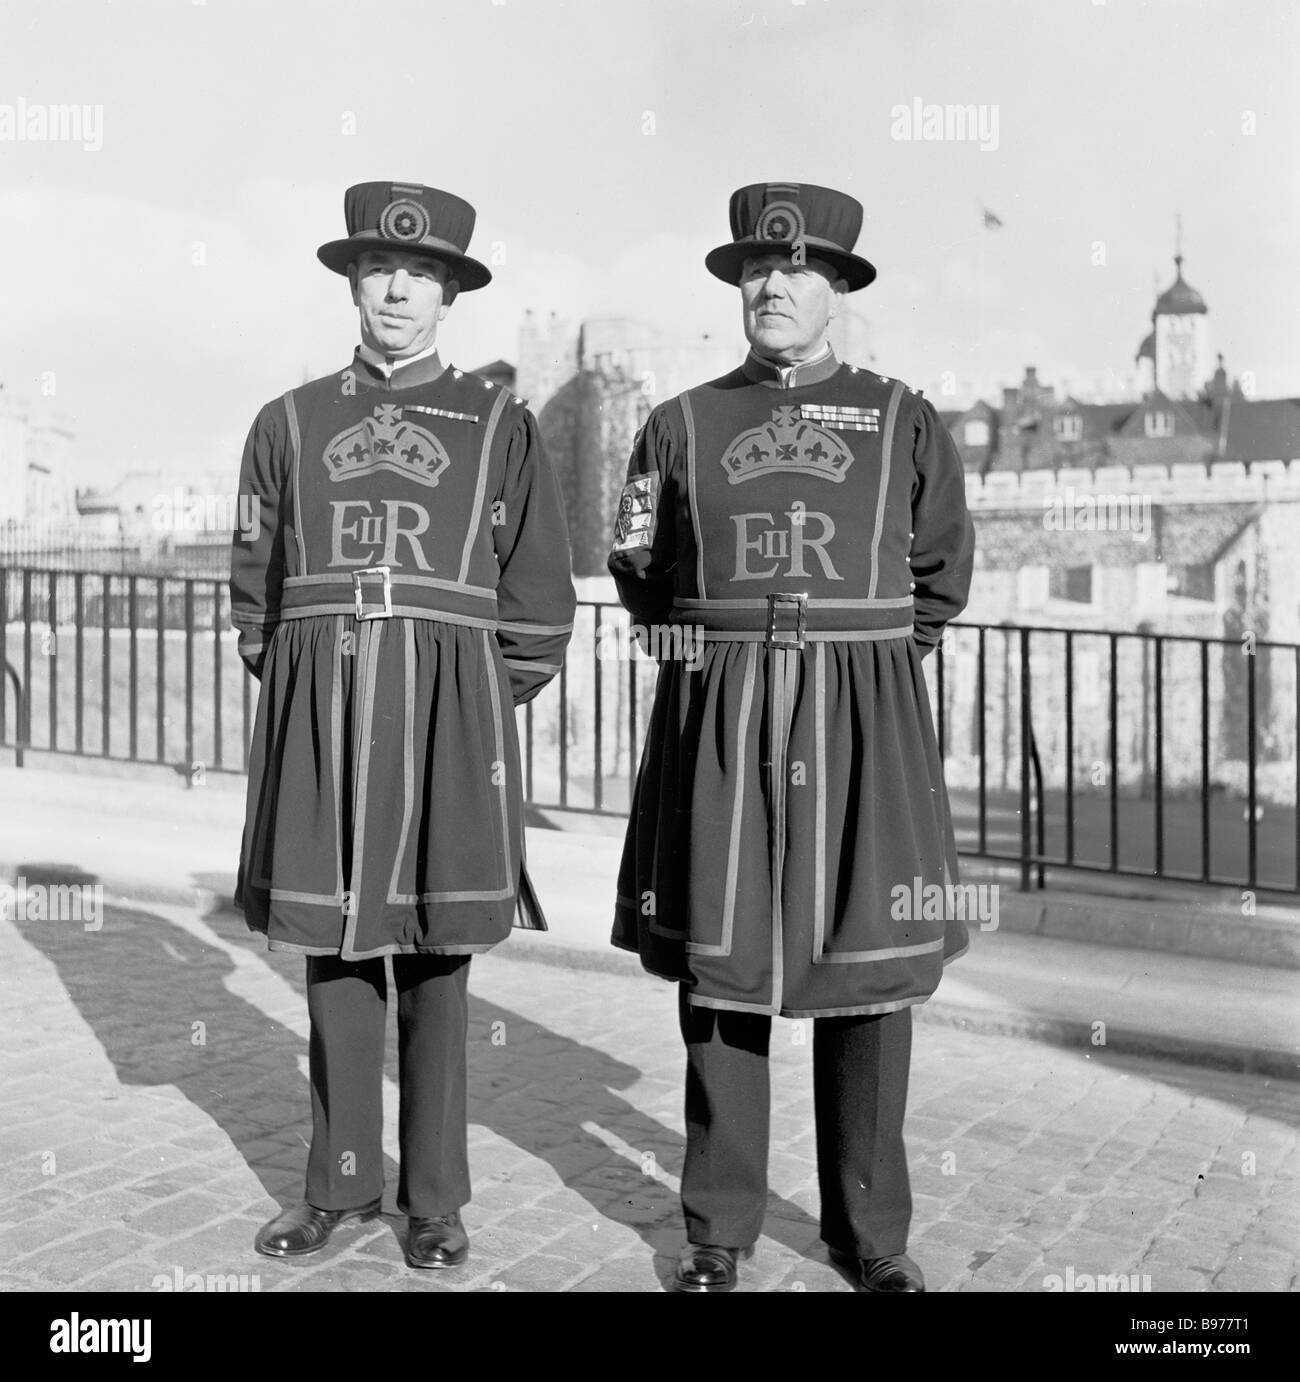 two ye of the english royal guard or beefeaters of tower of stock photo two ye of the english royal guard or beefeaters of tower of london in this picture taken in the 1950s by j allan cash